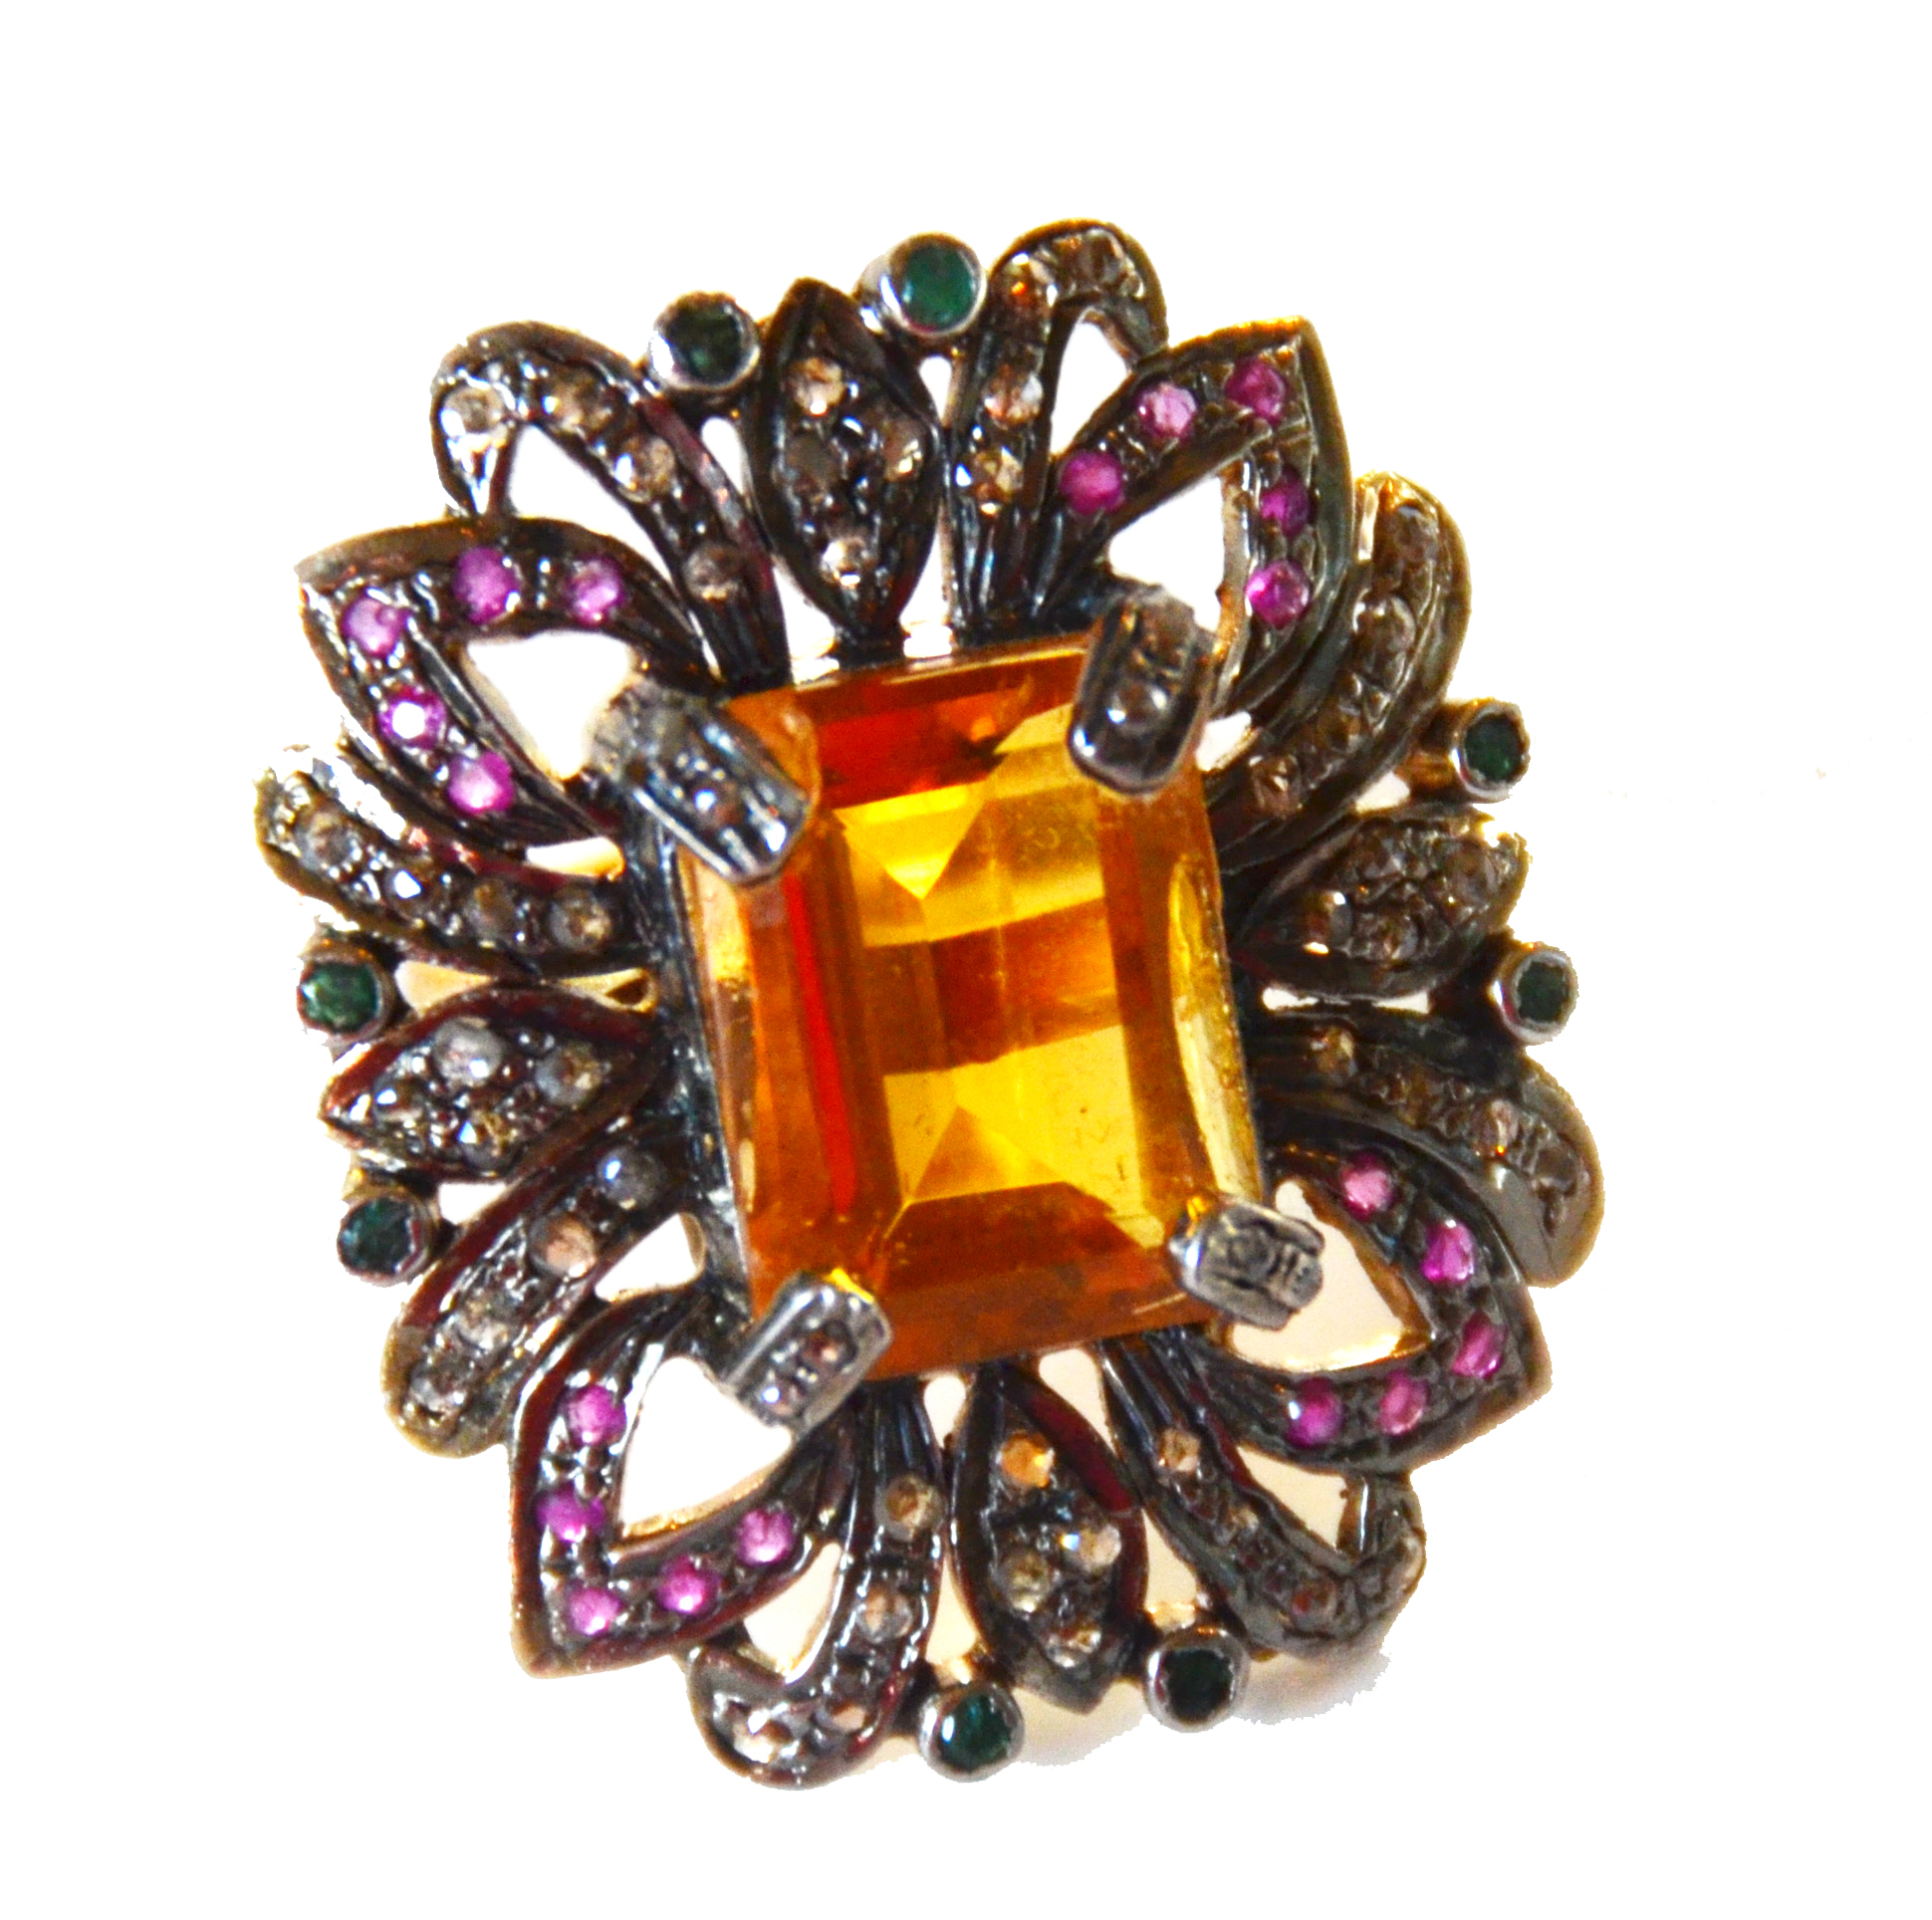 Citrine, Rose Cut Diamonds, & Rubies Vintage Ring-